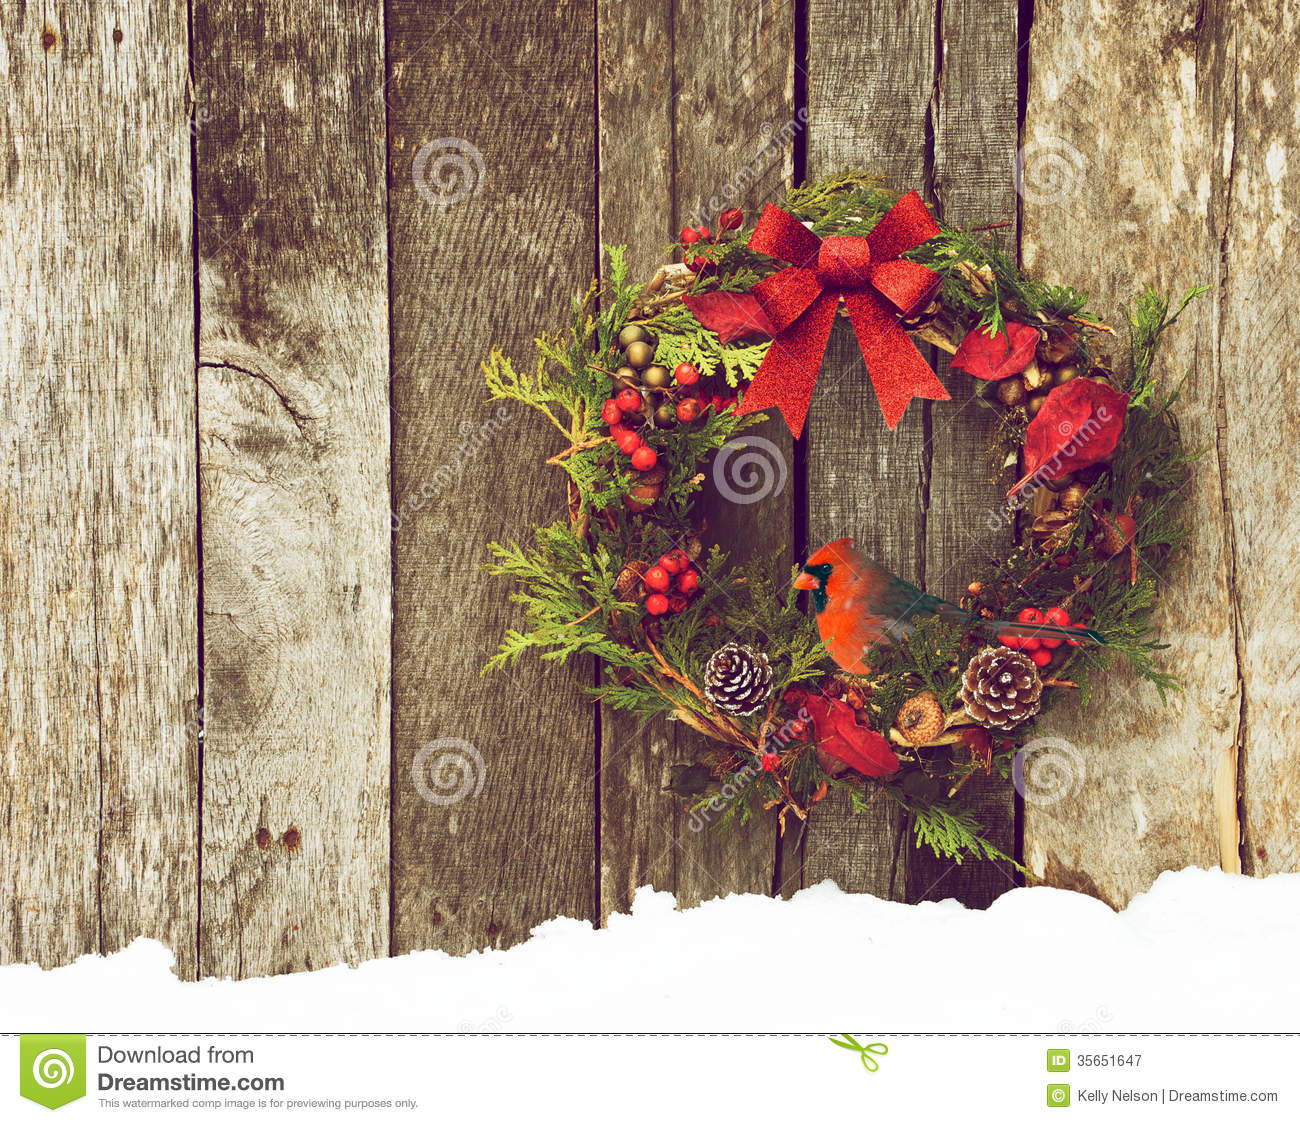 Christmas Wreath With Natural Decorations A Beautiful Male Northern Cardinal Peeking Out Hanging On Rustic Wooden Wall Copy Space